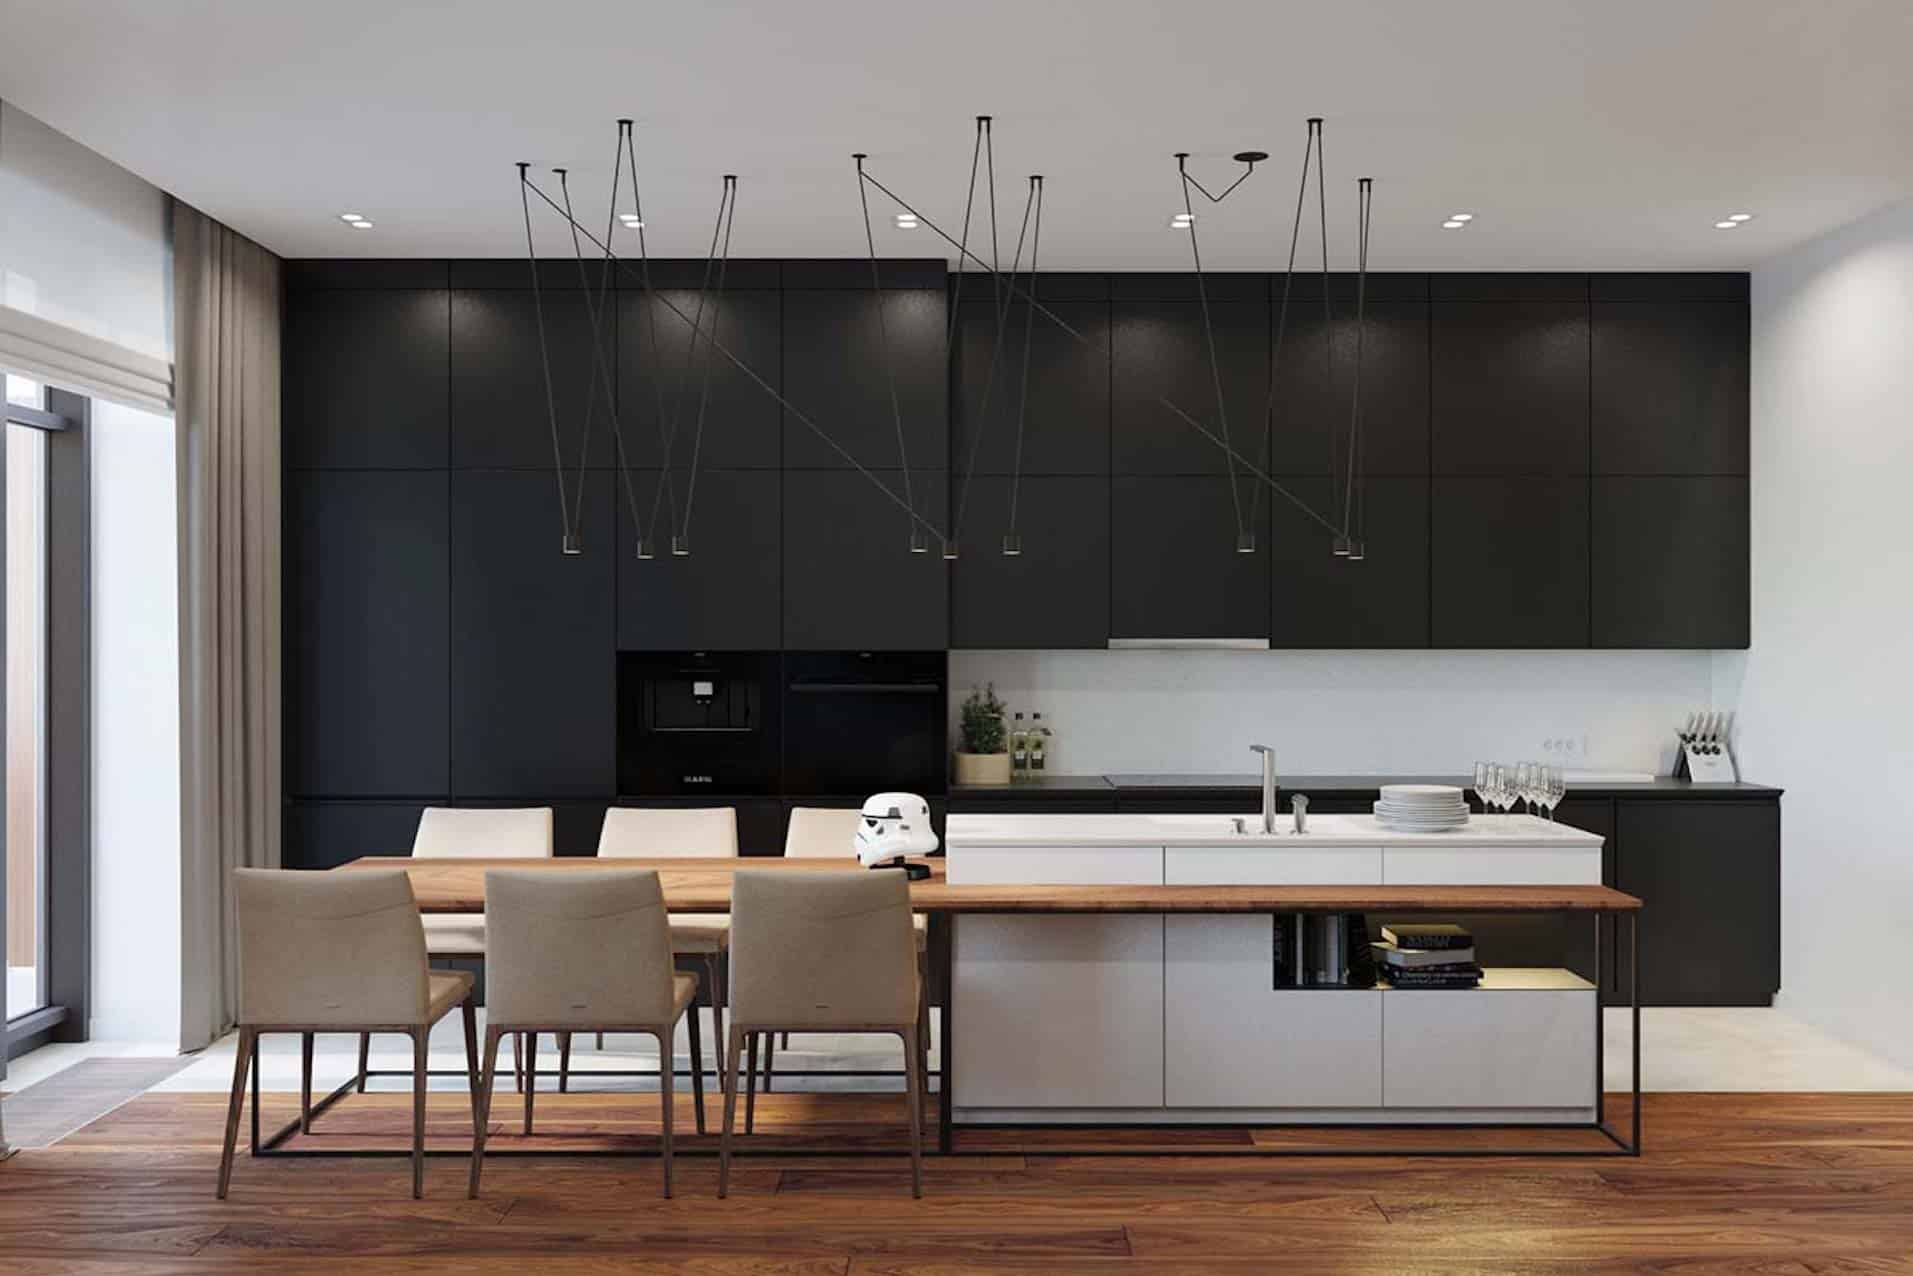 Lacquer kitchen cabinet,affordable luxury, pros and cons.